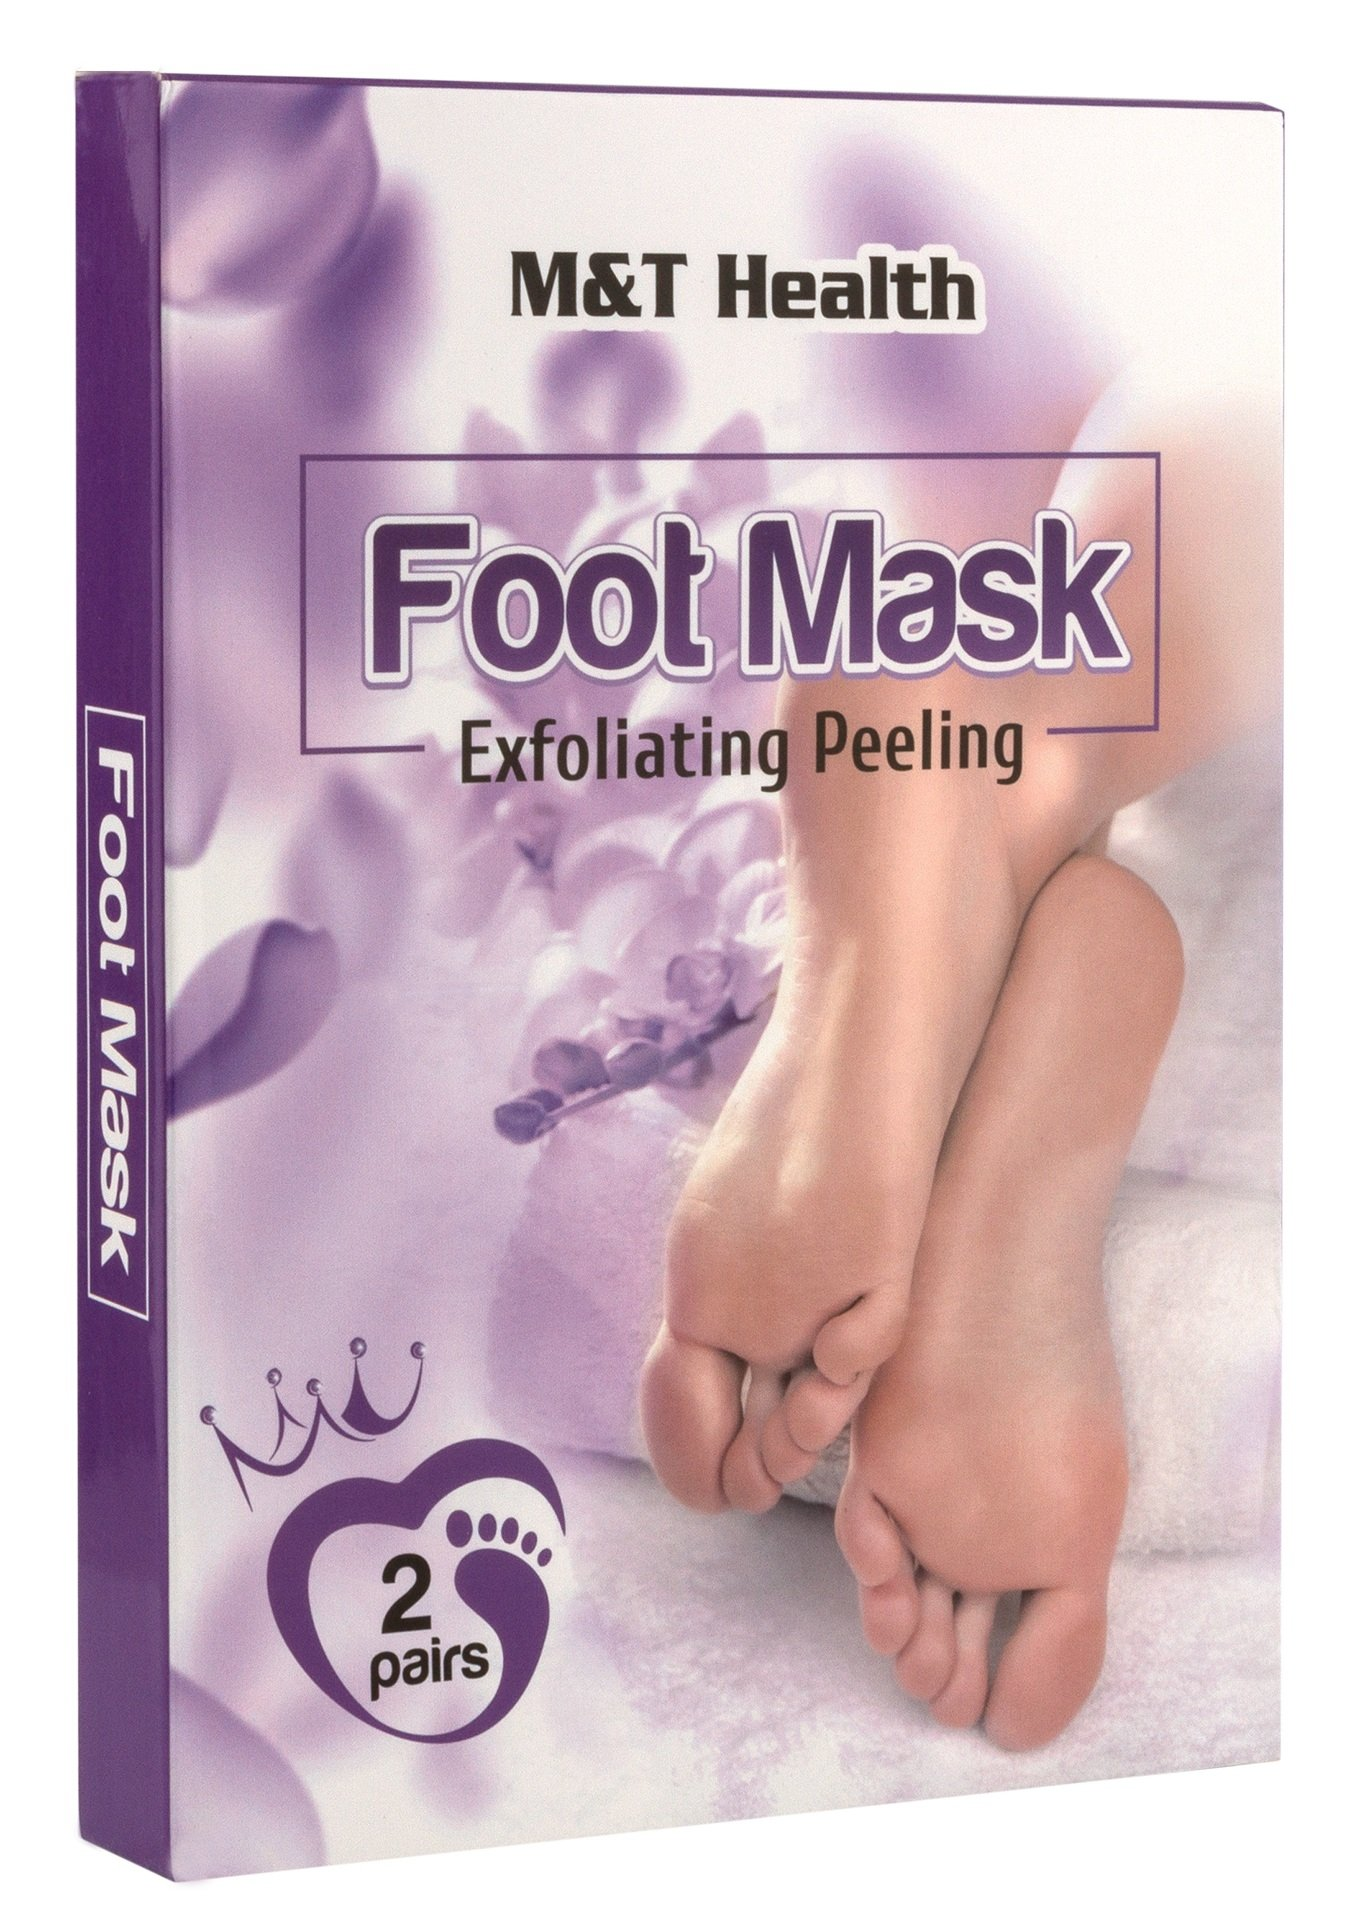 Foot Peel Mask Exfoliating Peeling – Soft & Smooth Just Like Baby Feet – Foot Exfoliation Peeling Mask – Soft Touch Foot Peel Mask Exfoliating Callus Remover for Women and Men 2 pack – Best Gift